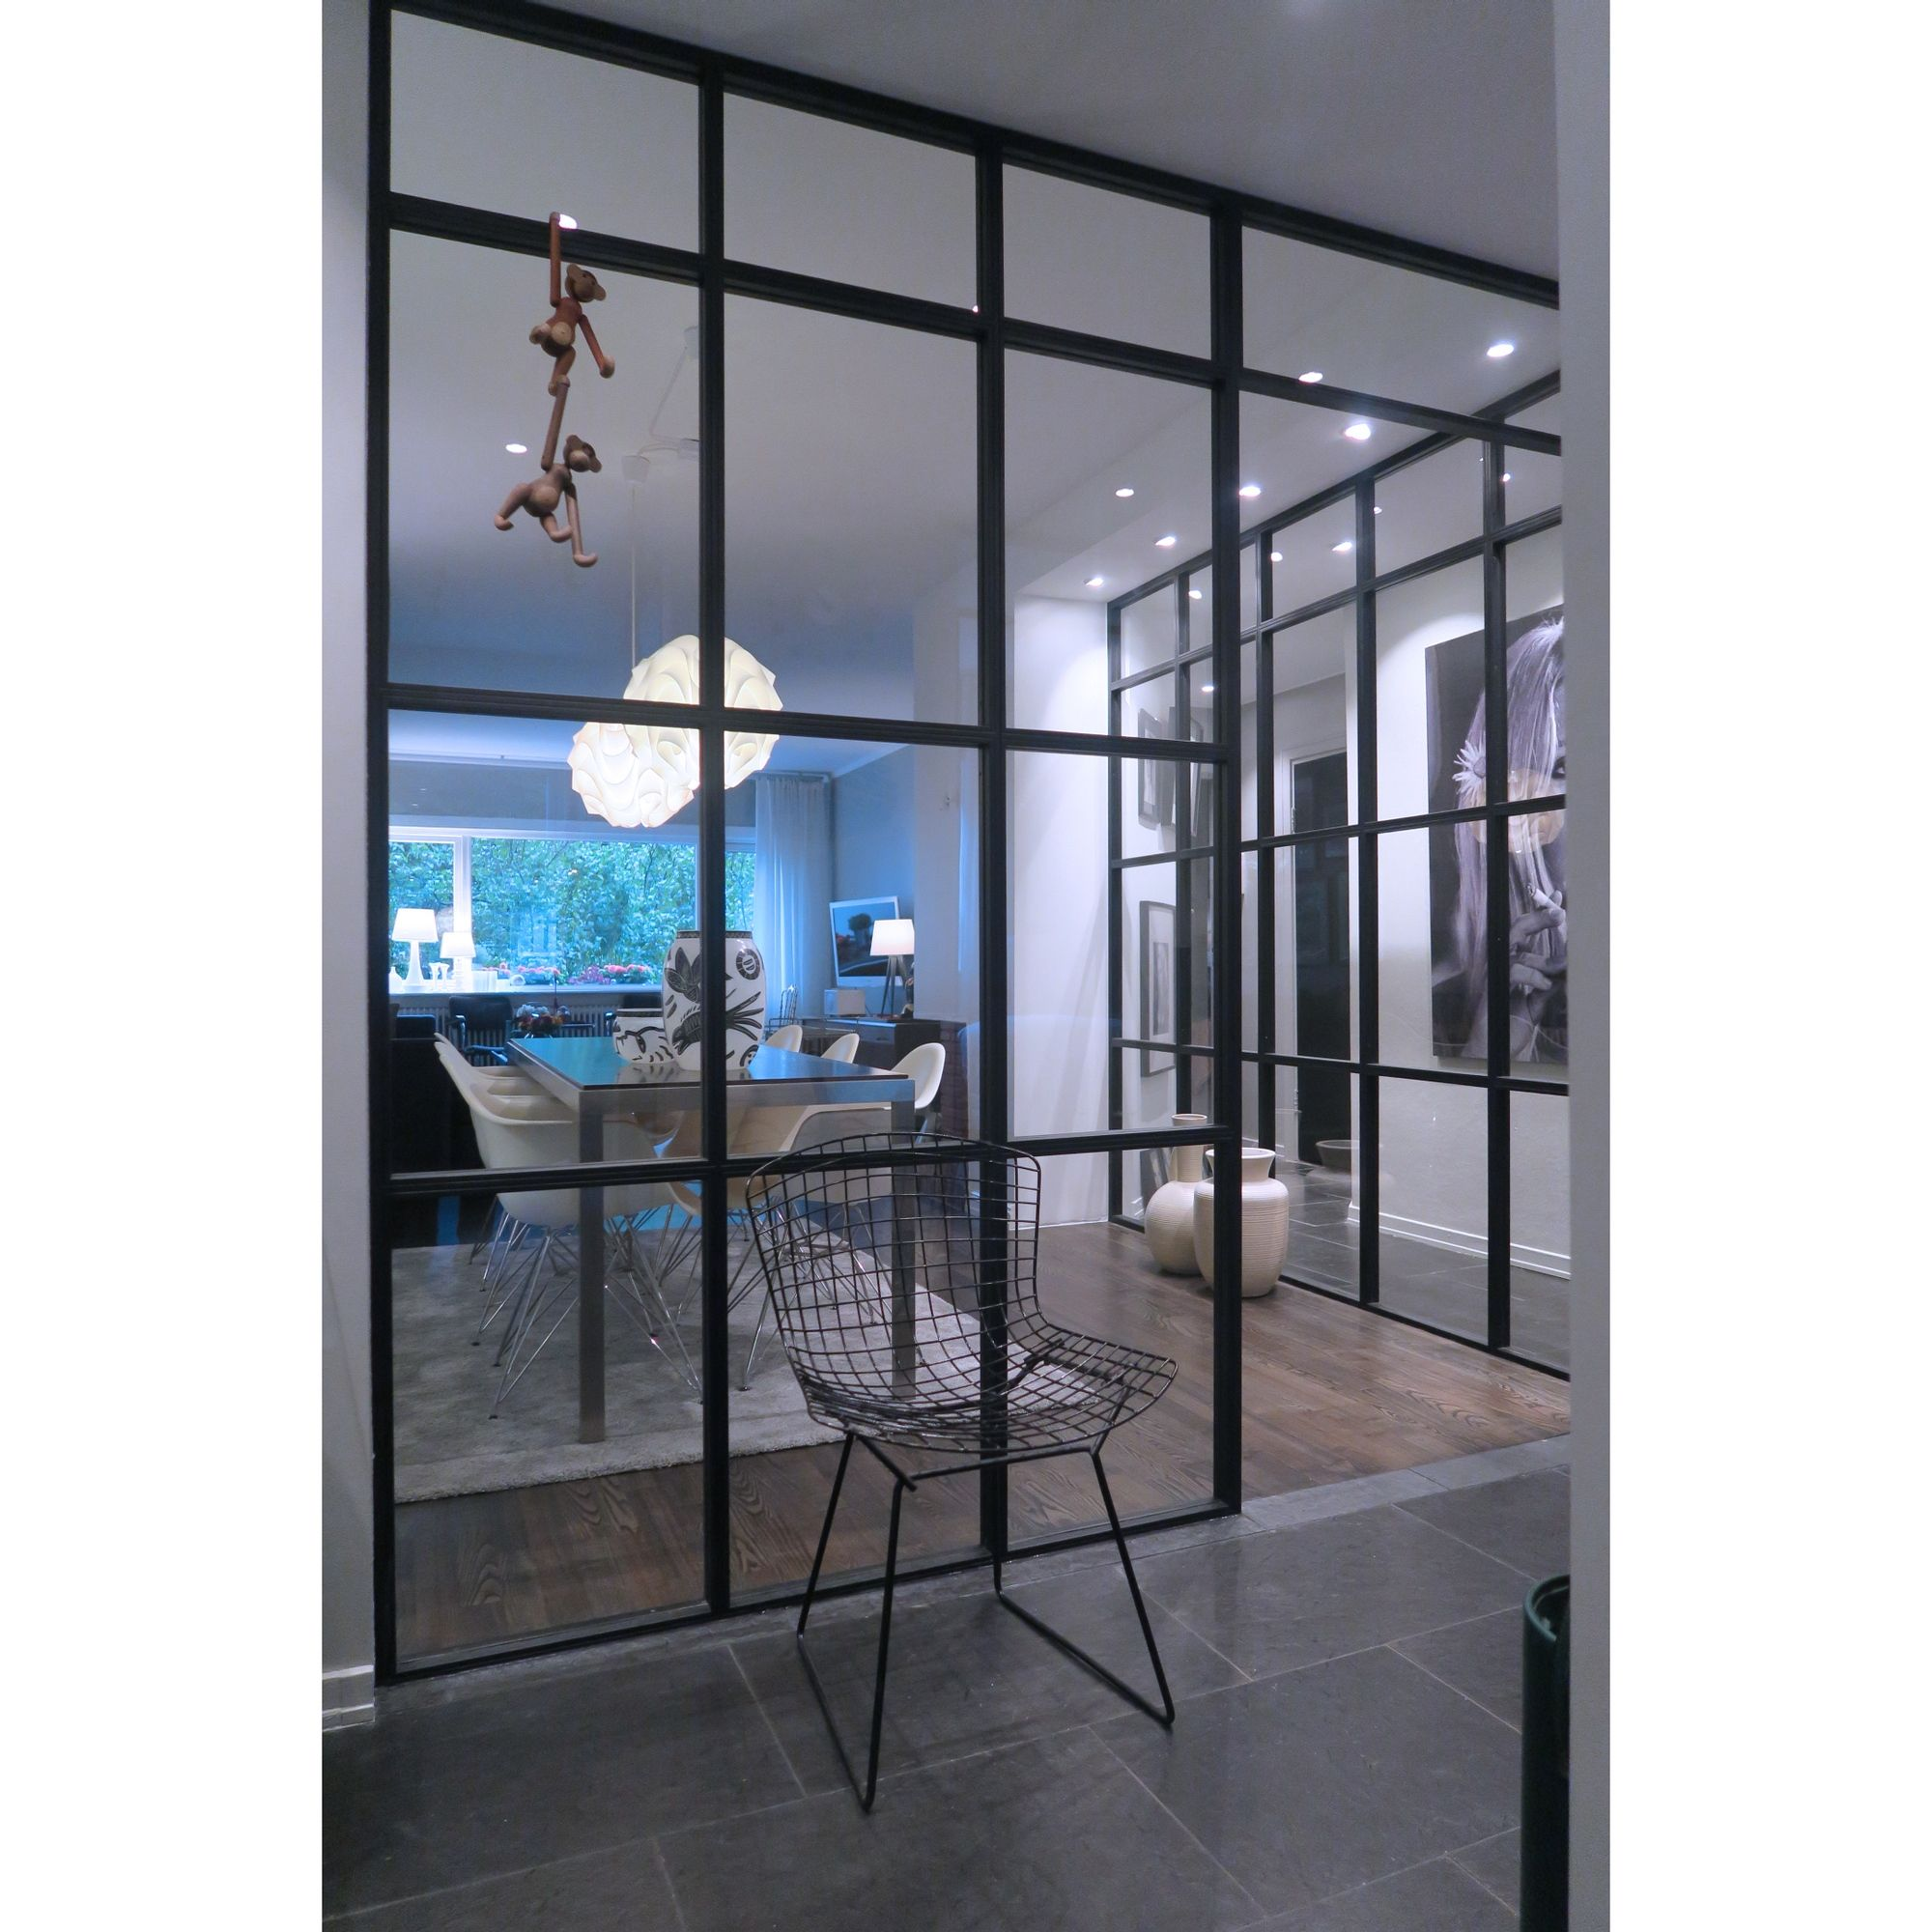 Dividing rooms with steel and glass partitions can bring the…